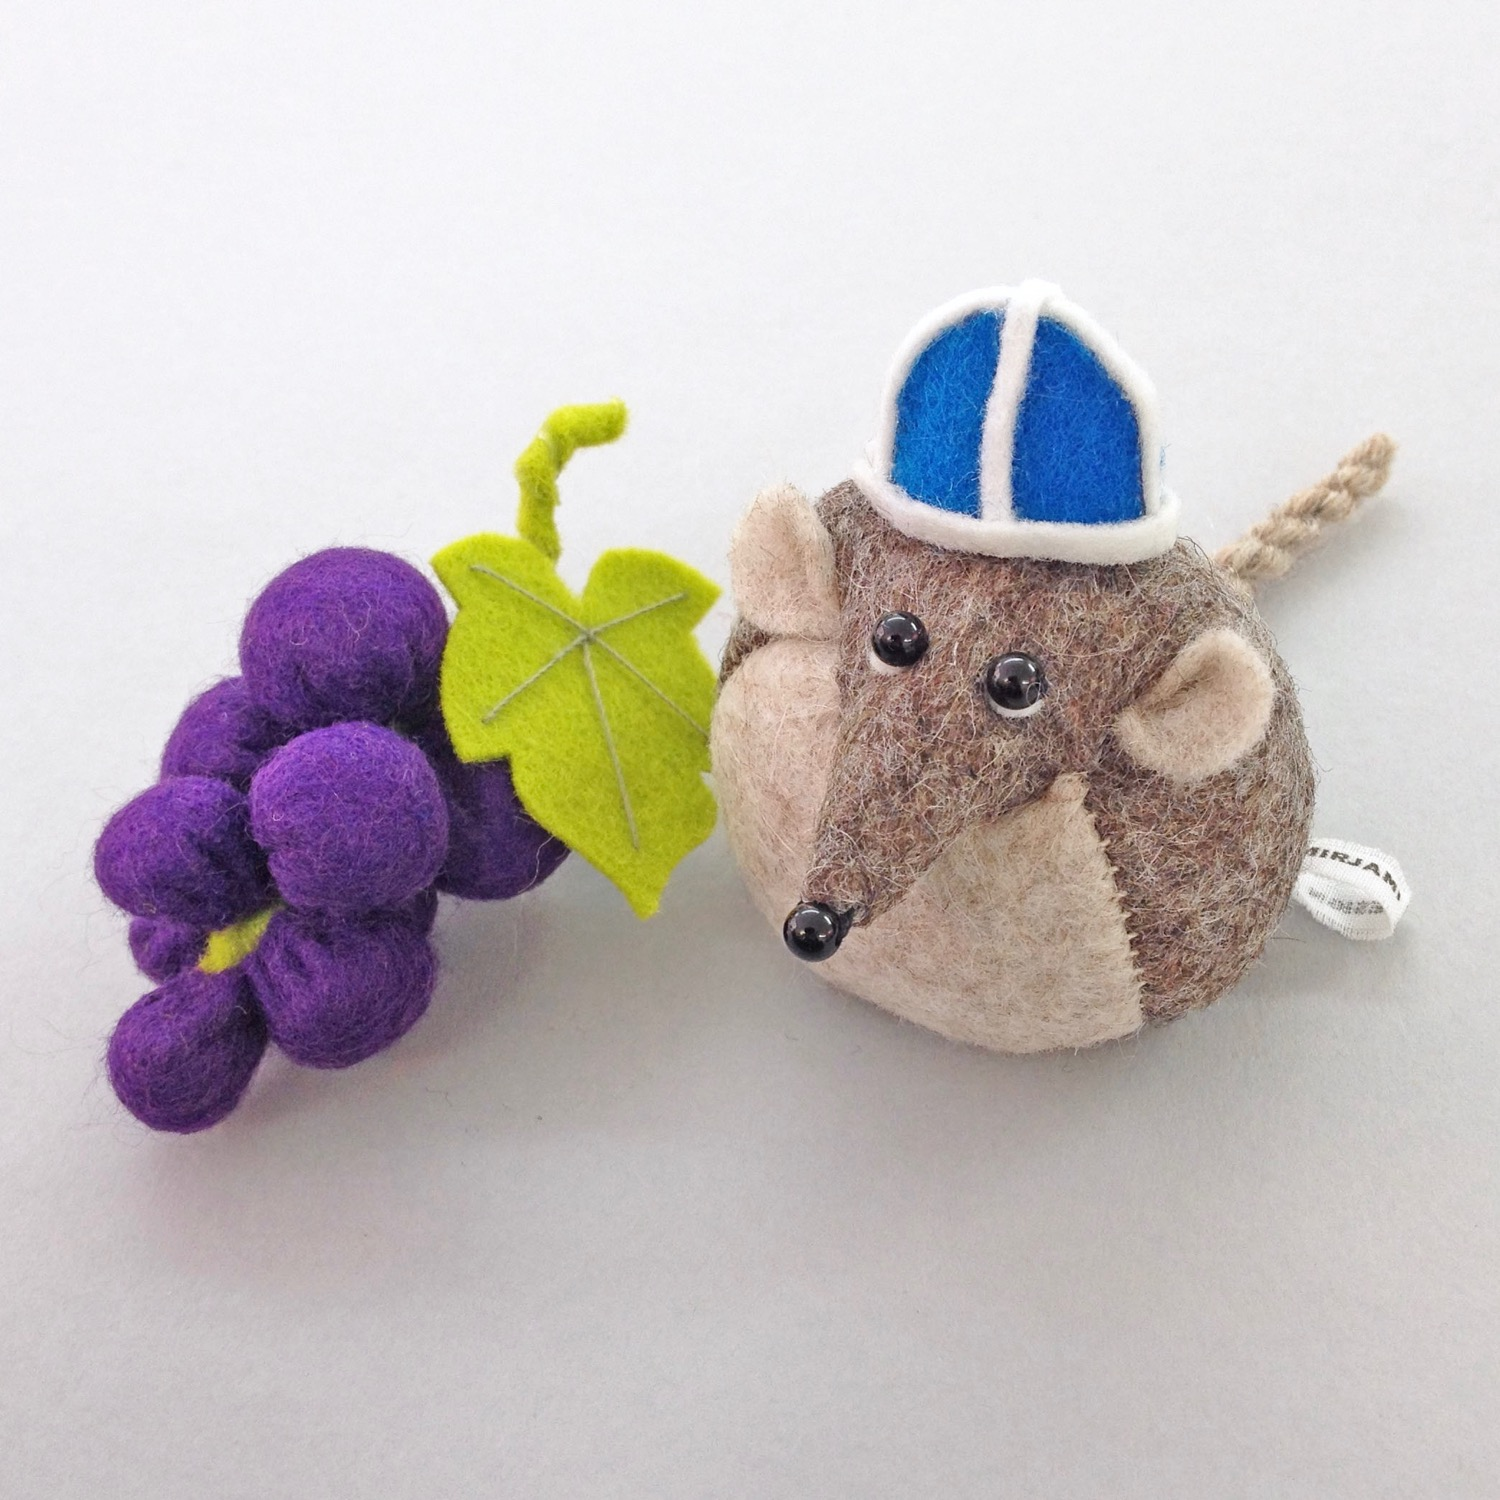 Henry the Harvest Mouse wool felt Bilberry Woods character by Laura Mirjami